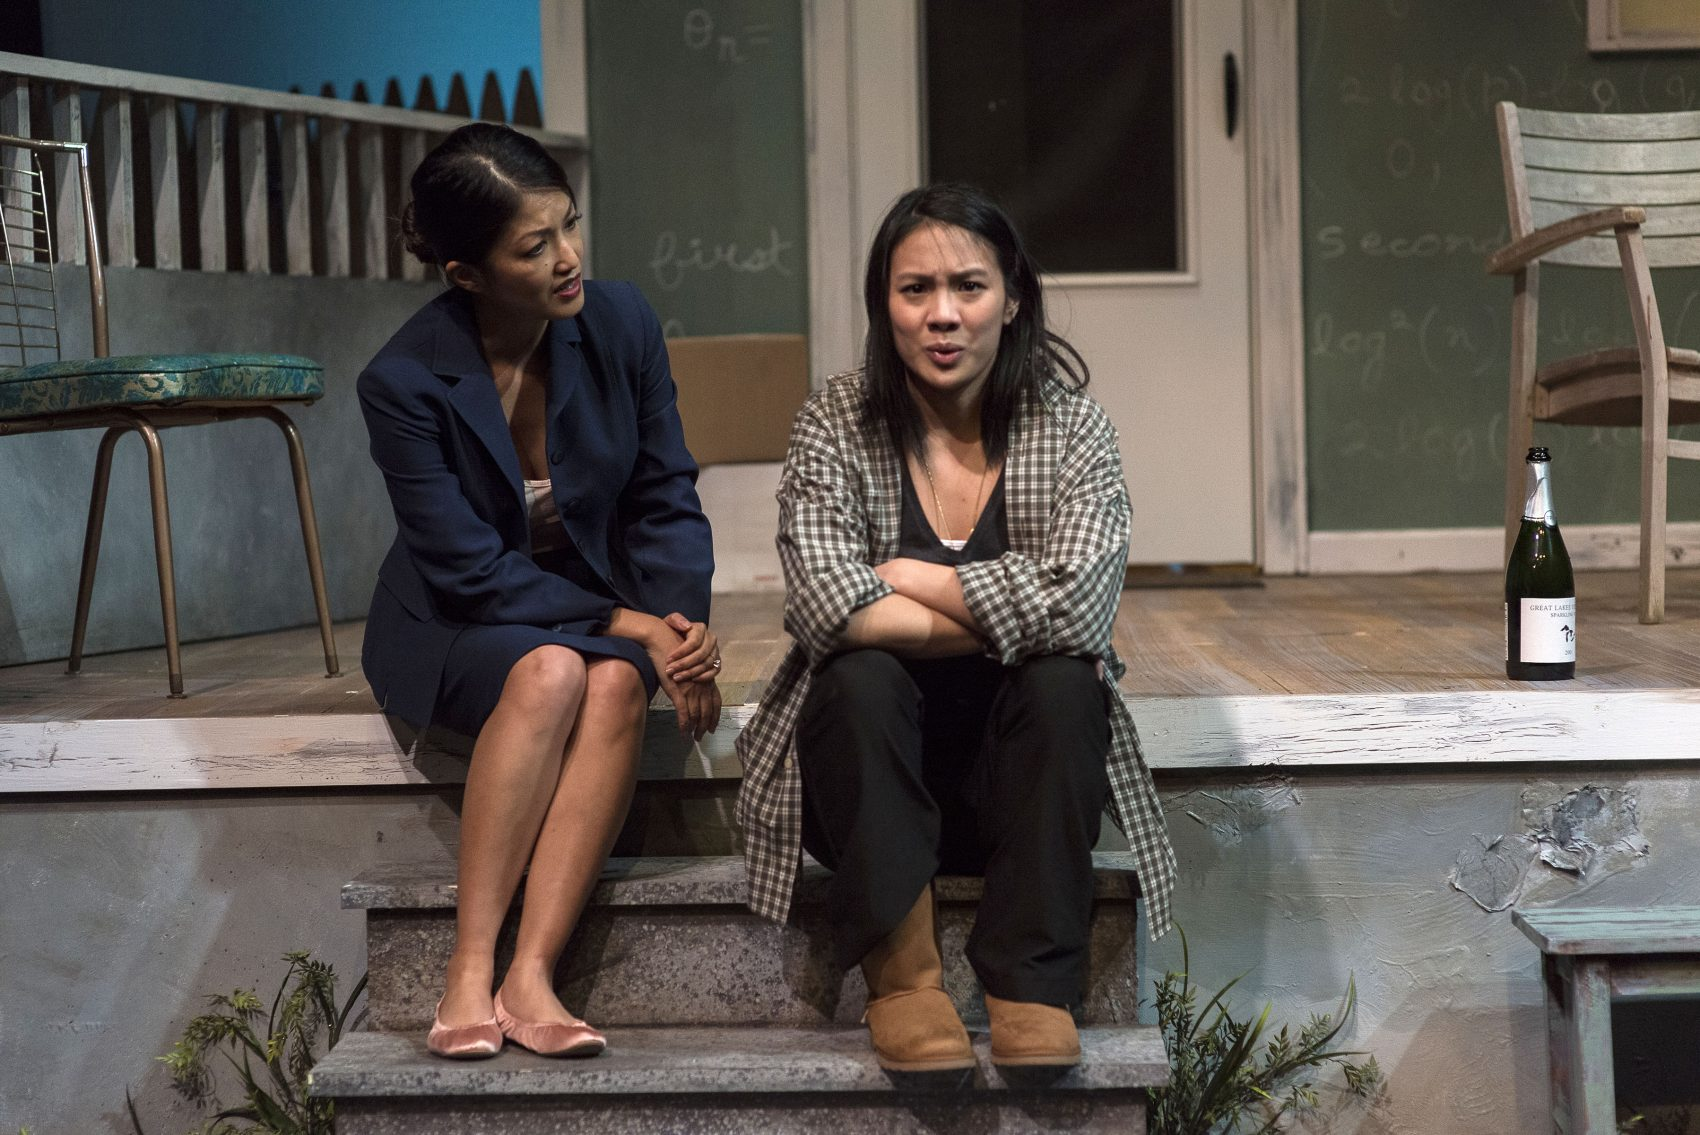 """Cheryl Daro as Claire, left, and Lisa Nguyen as Catherine in Nora Theatre Company's """"Proof."""" (Courtesy A.R. Sinclair Photography)"""